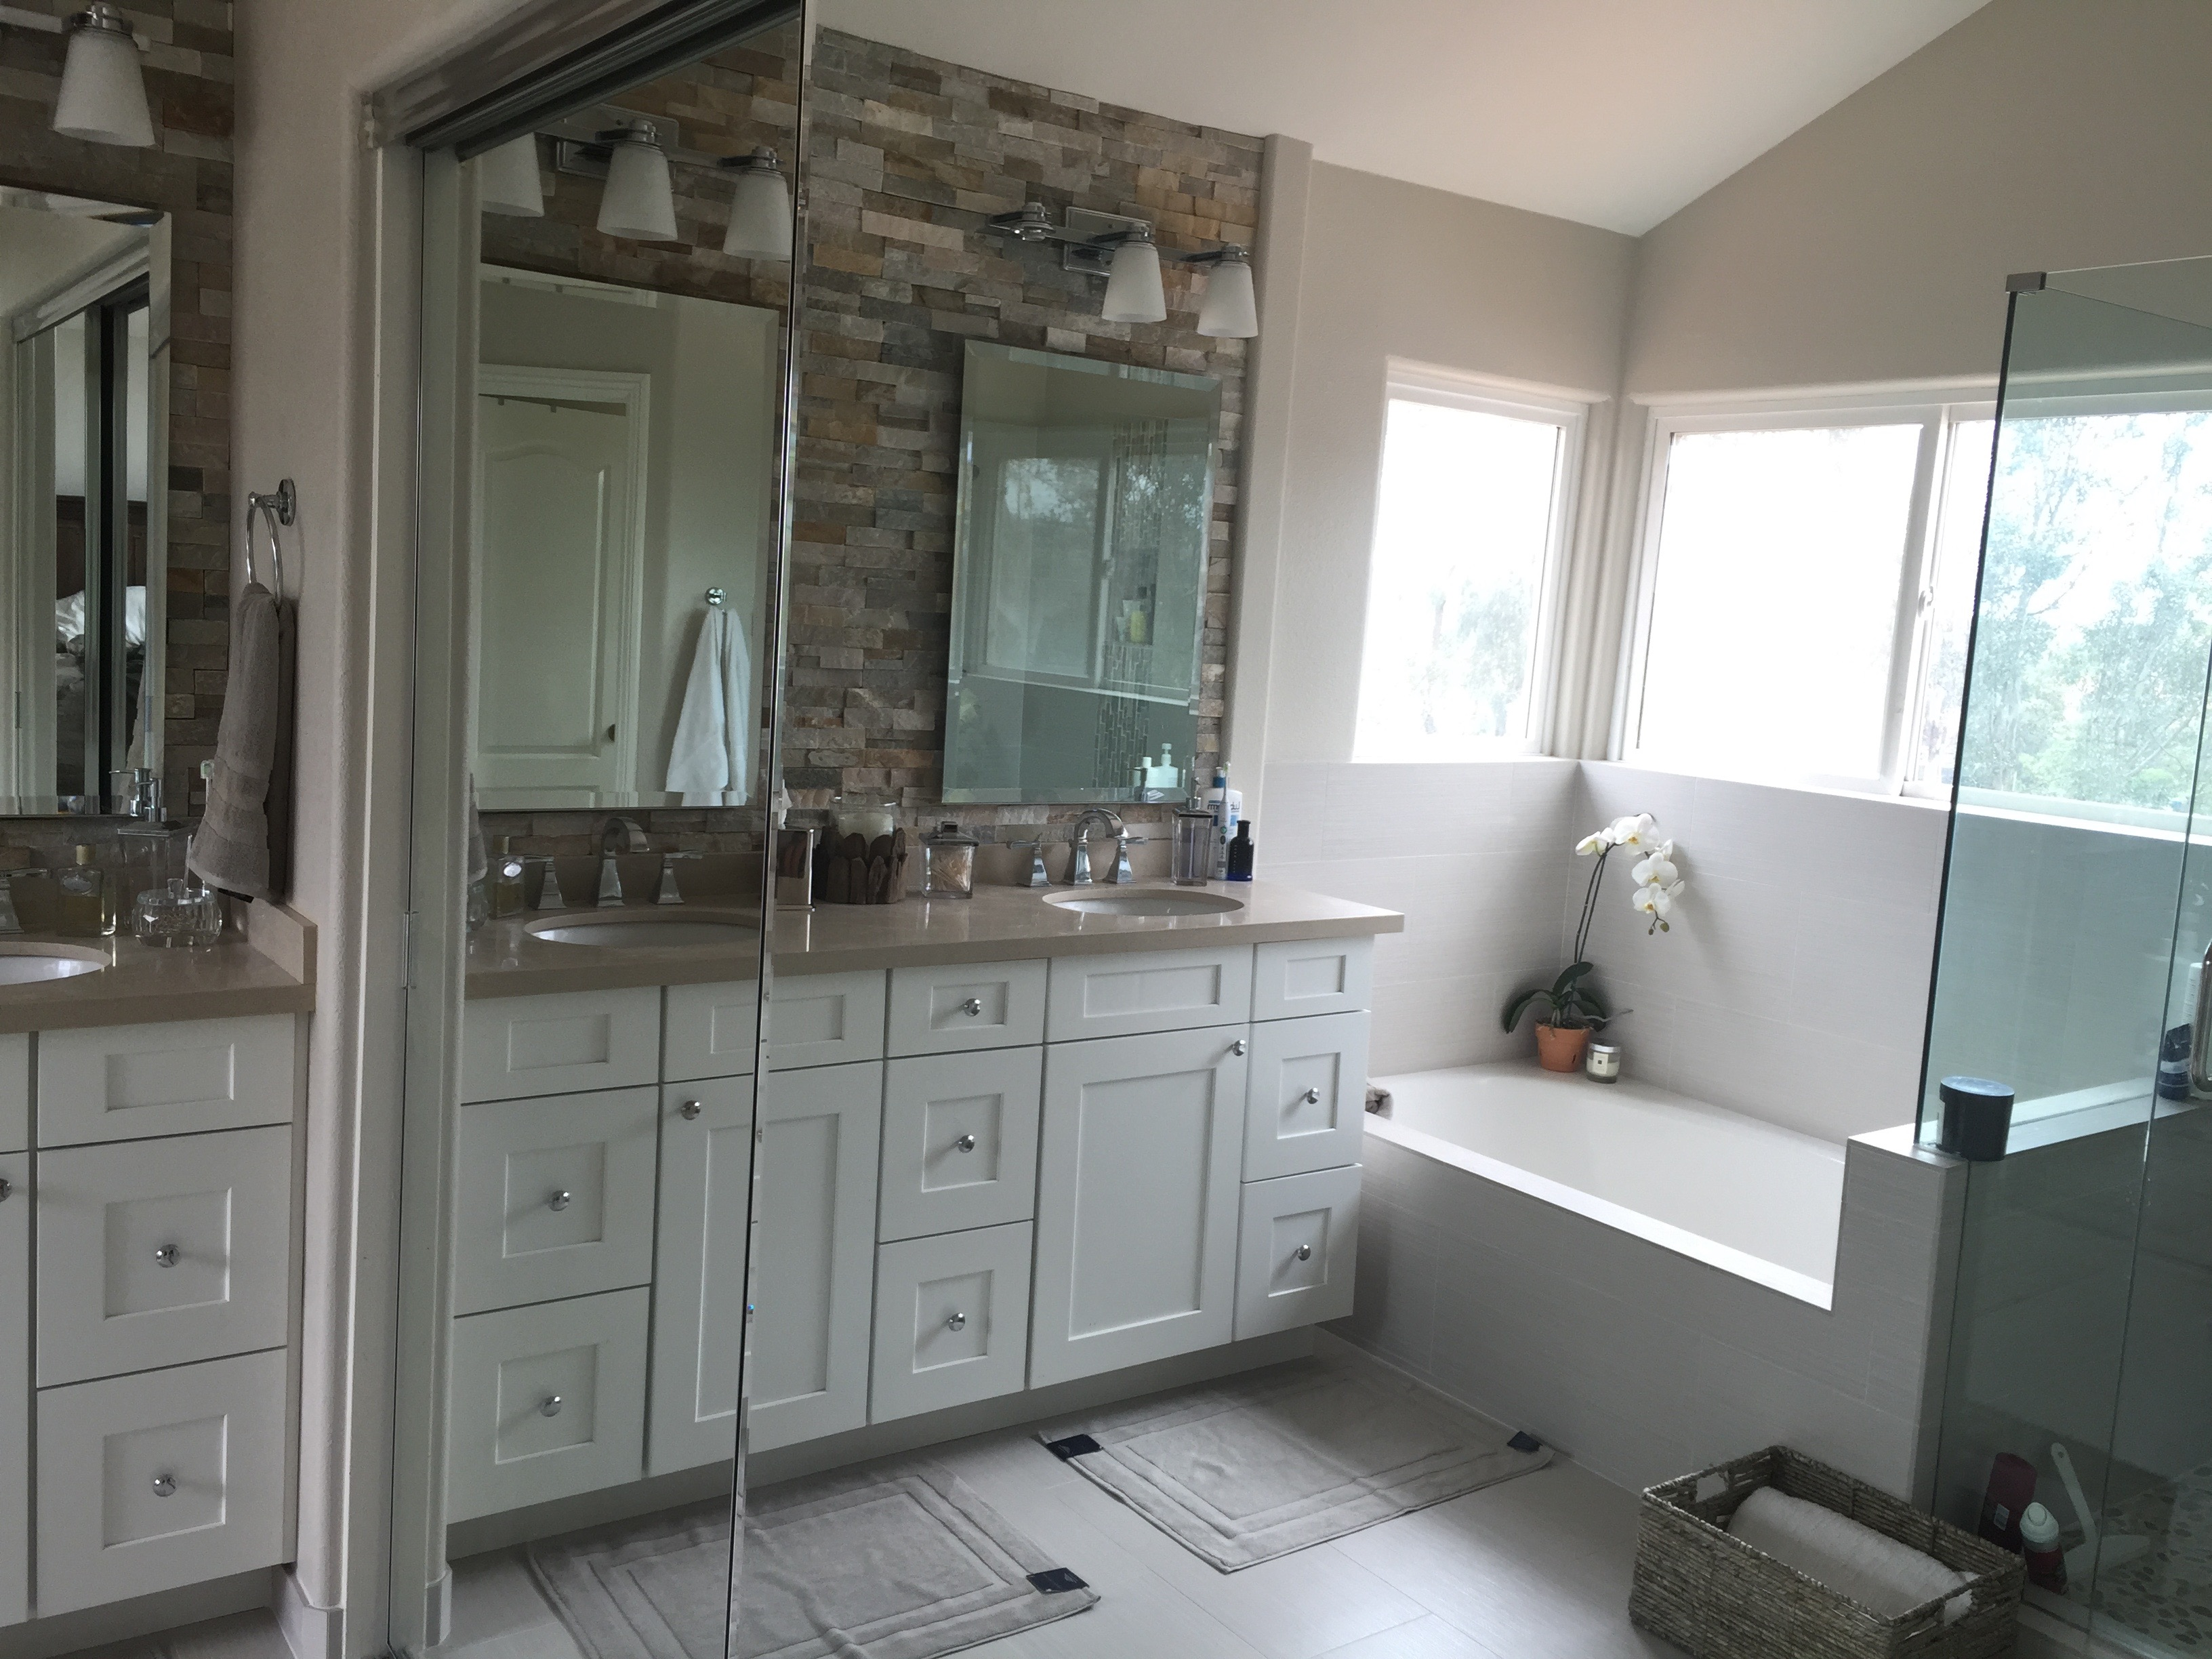 Bathroom Renovation Company Gives Tips For An Inviting Guest Bath - Cheap bathroom remodel company